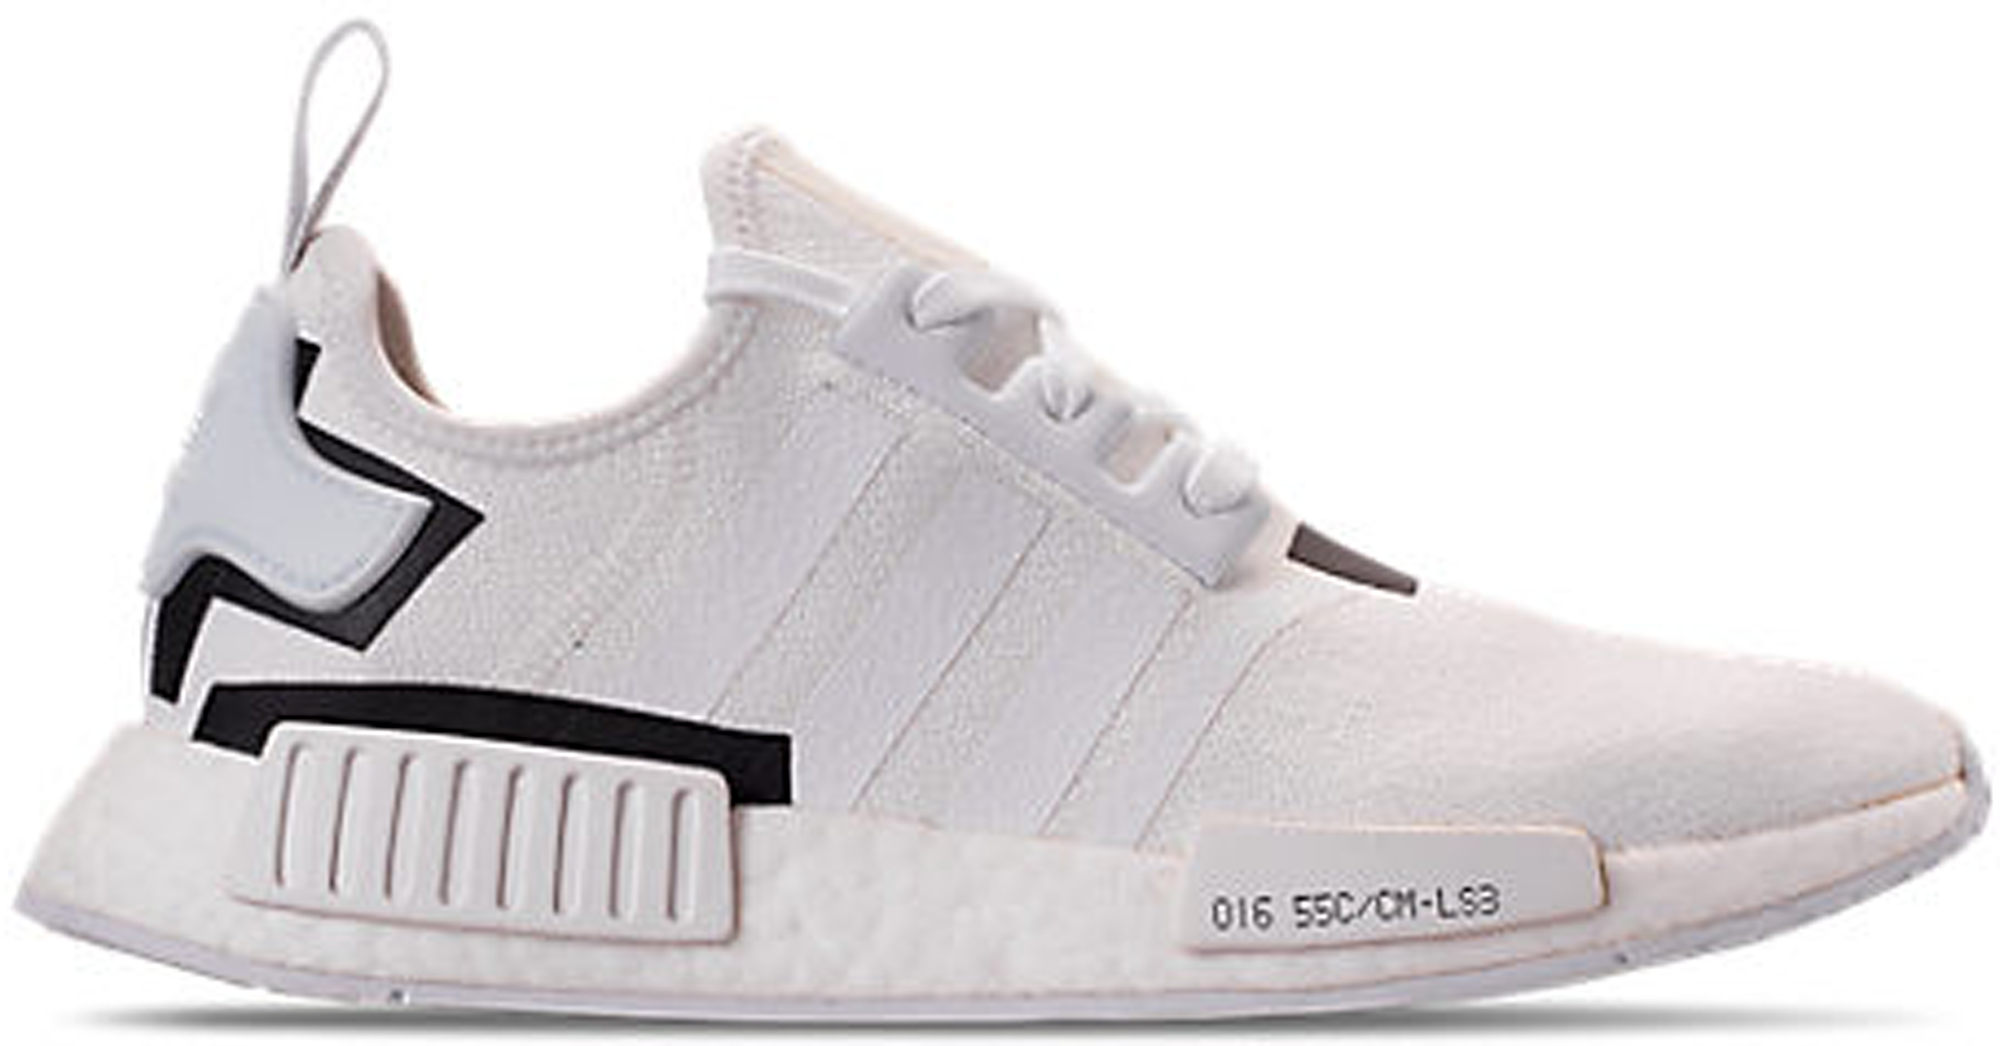 adidas nmd r1 white and black